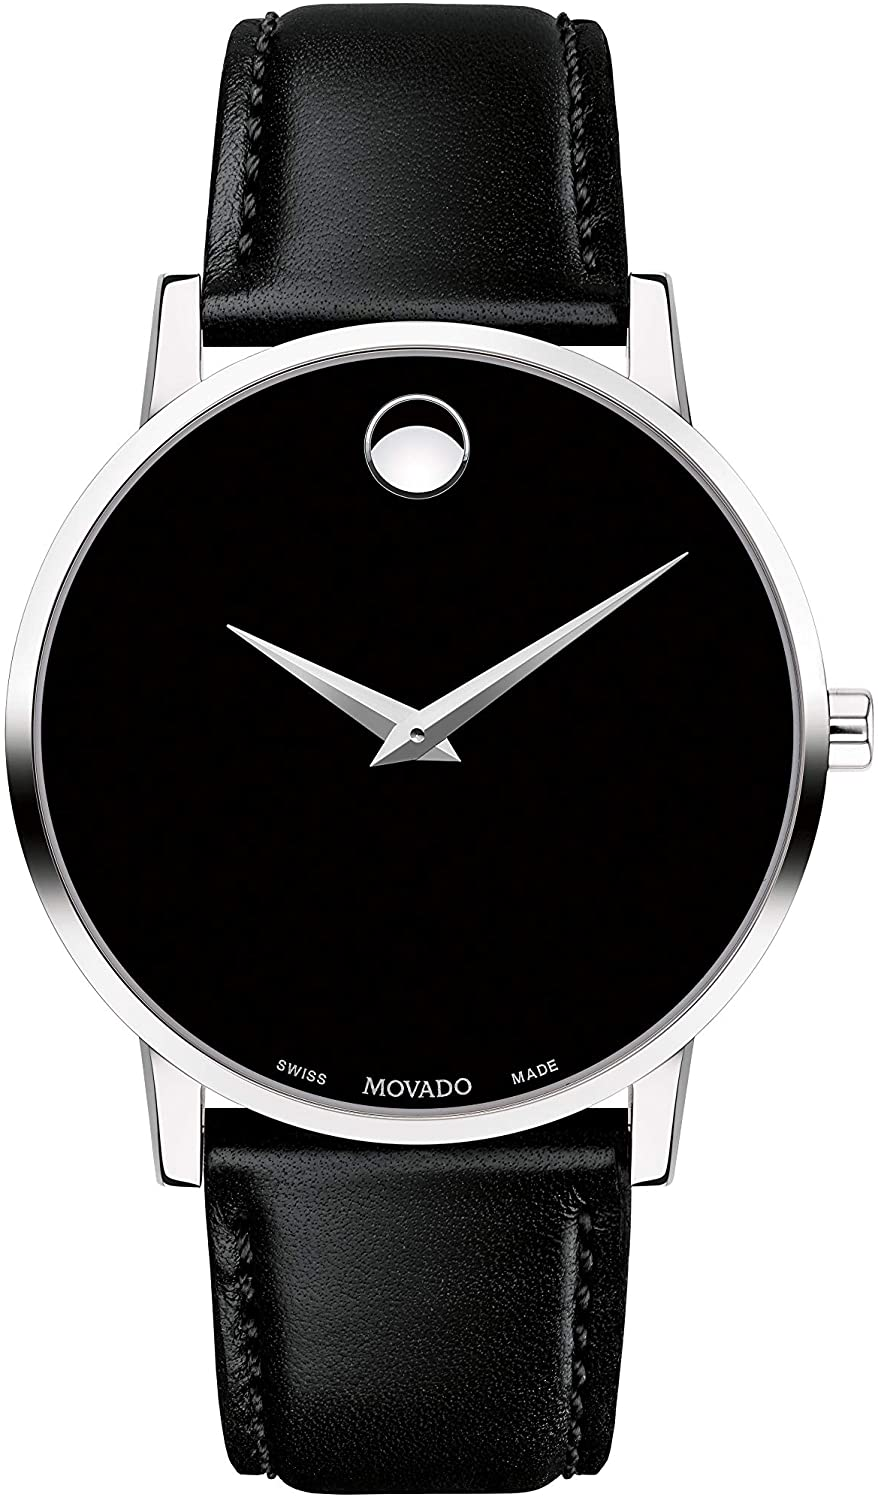 Movado Men s Museum Stainless Steel Watch with Concave Dot Museum Dial, Silver Black Strap 607269